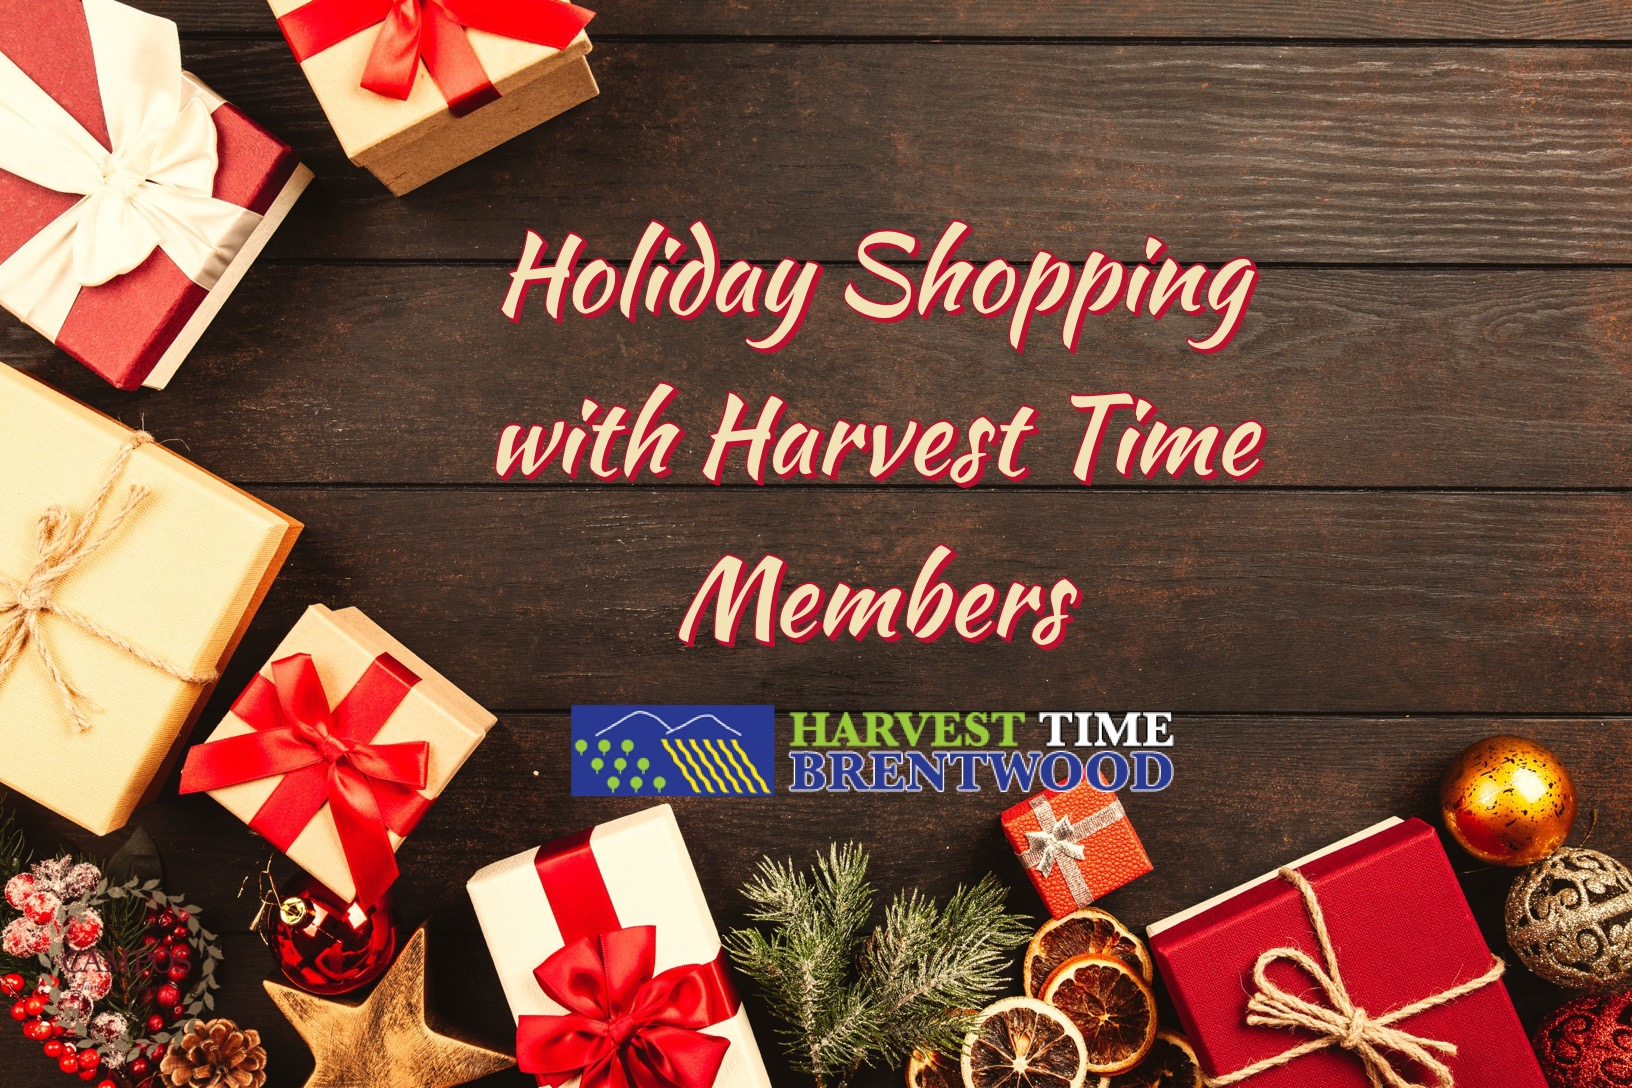 Holiday Shopping and Gifts - Harvest Time Brentwood